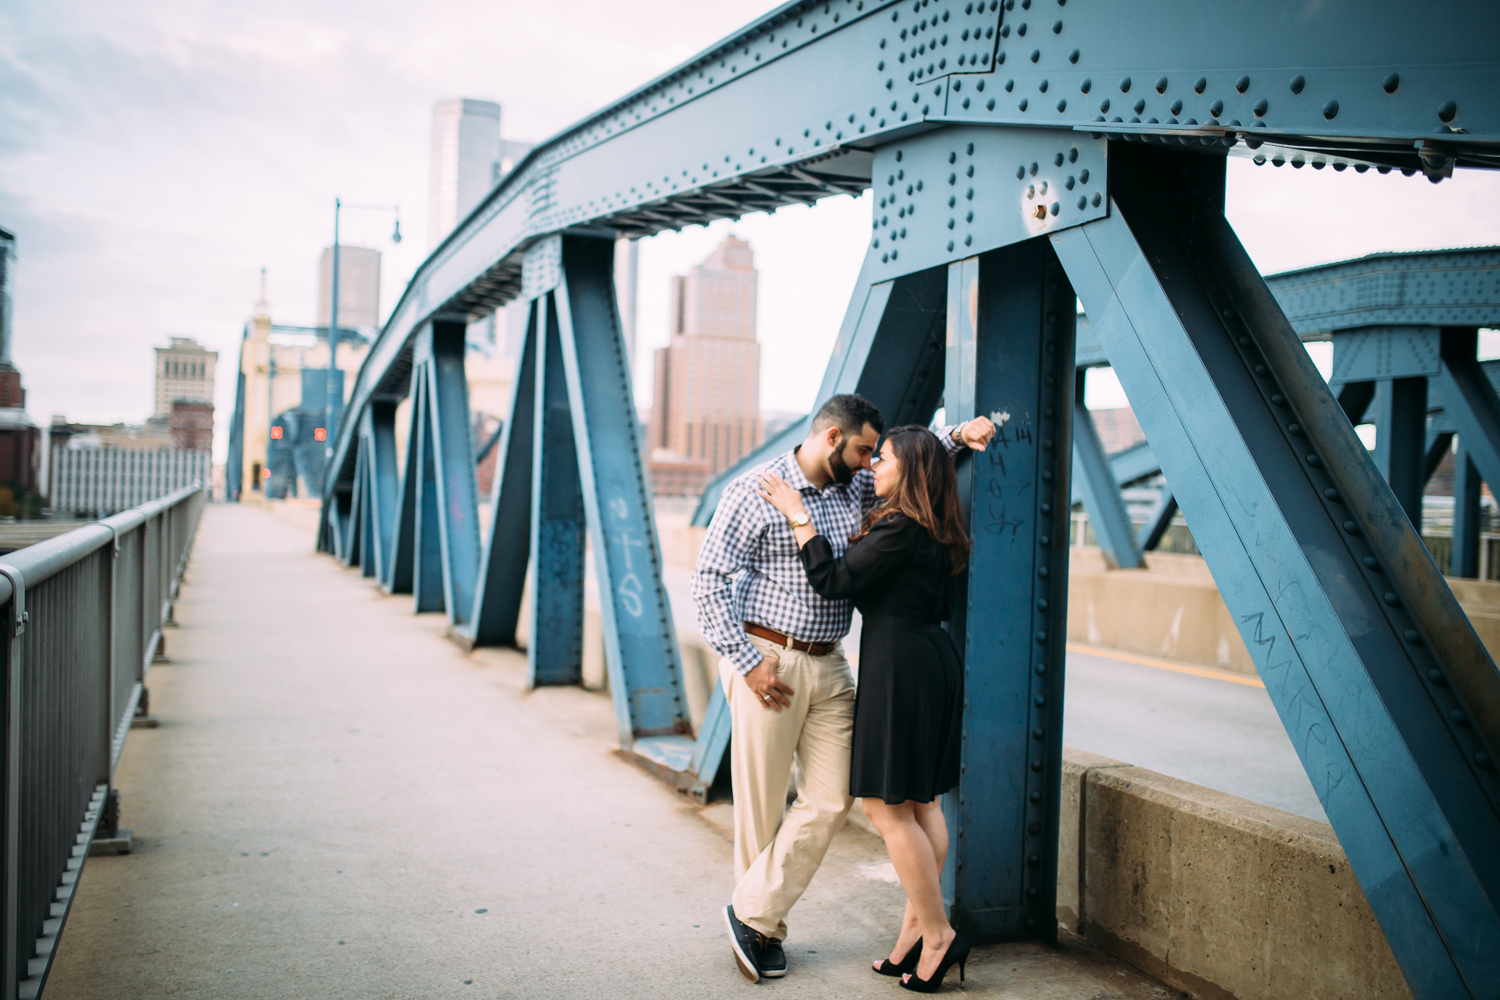 Ashley-reed-photography-pittsburgh-engagement-engagementphotography-engagementphotographer-stationsquare-statio-square-pittsburghengagementphotography-28.jpg